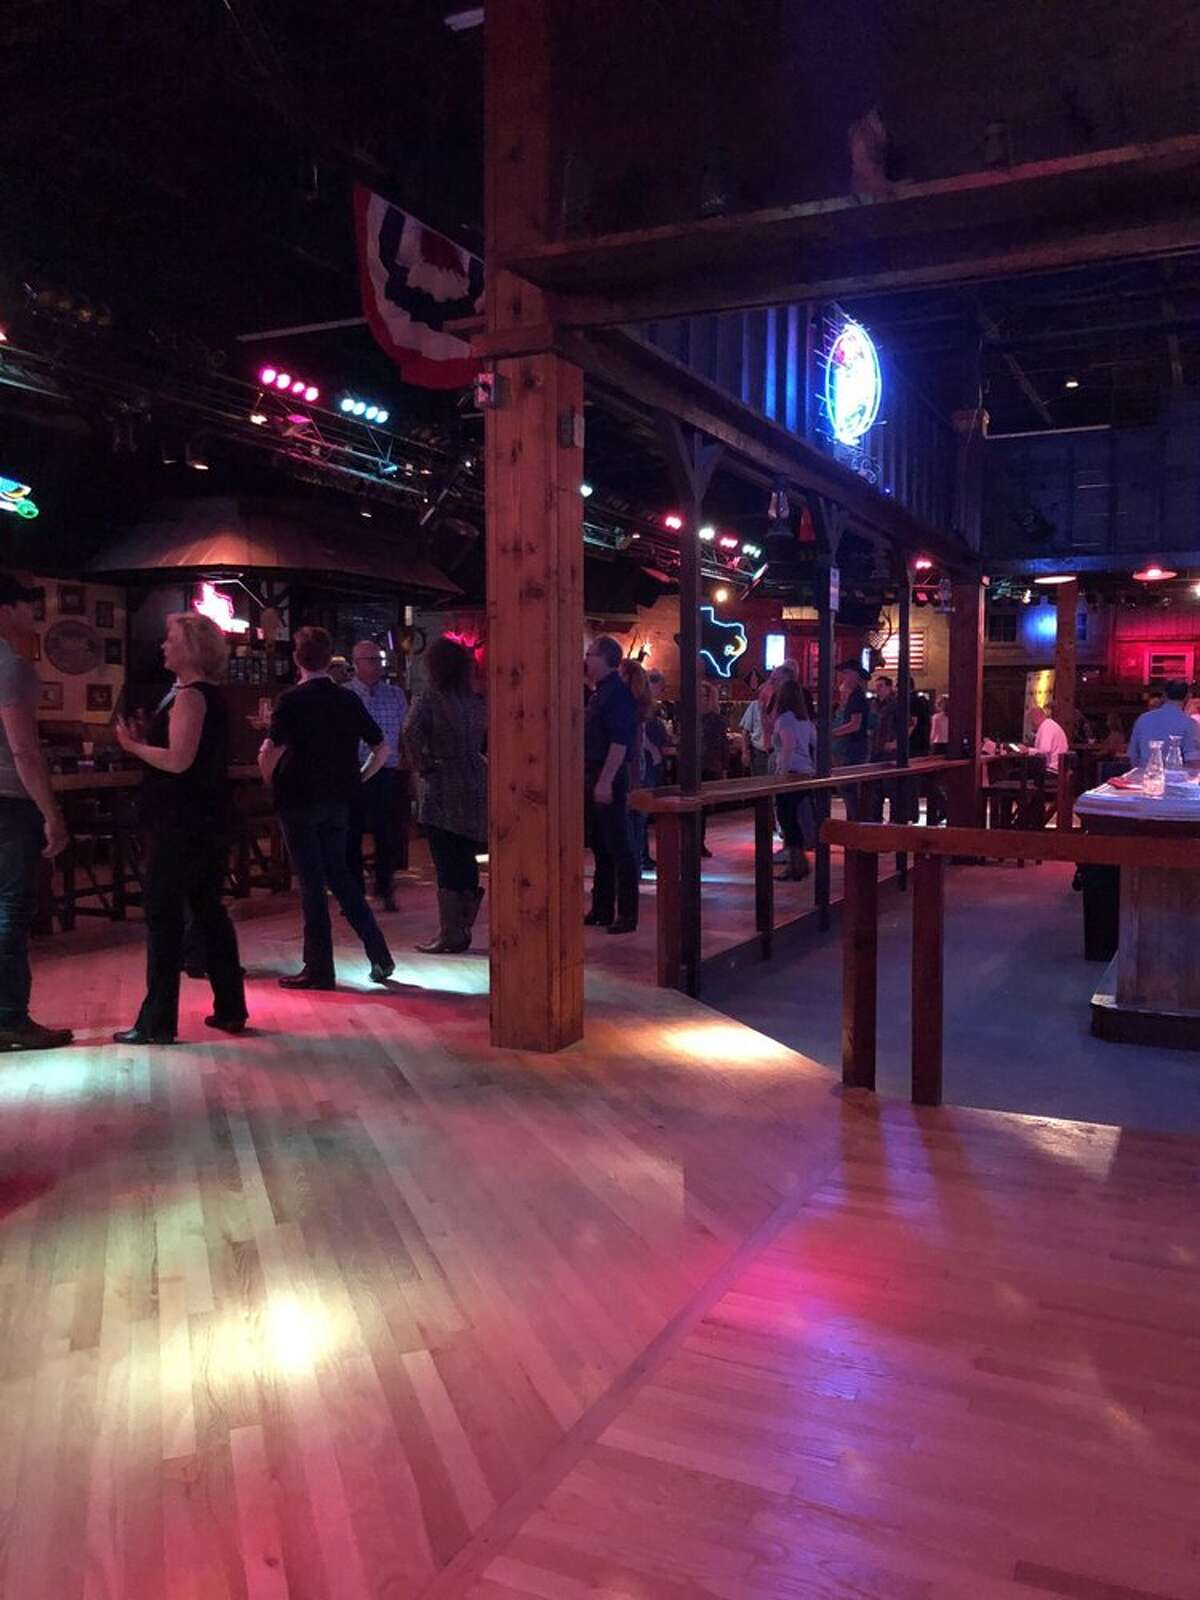 Big Texas Spring Dance Hall & Saloon is closing its doors for good after 15 years. Photo: Yelp/Karen C.